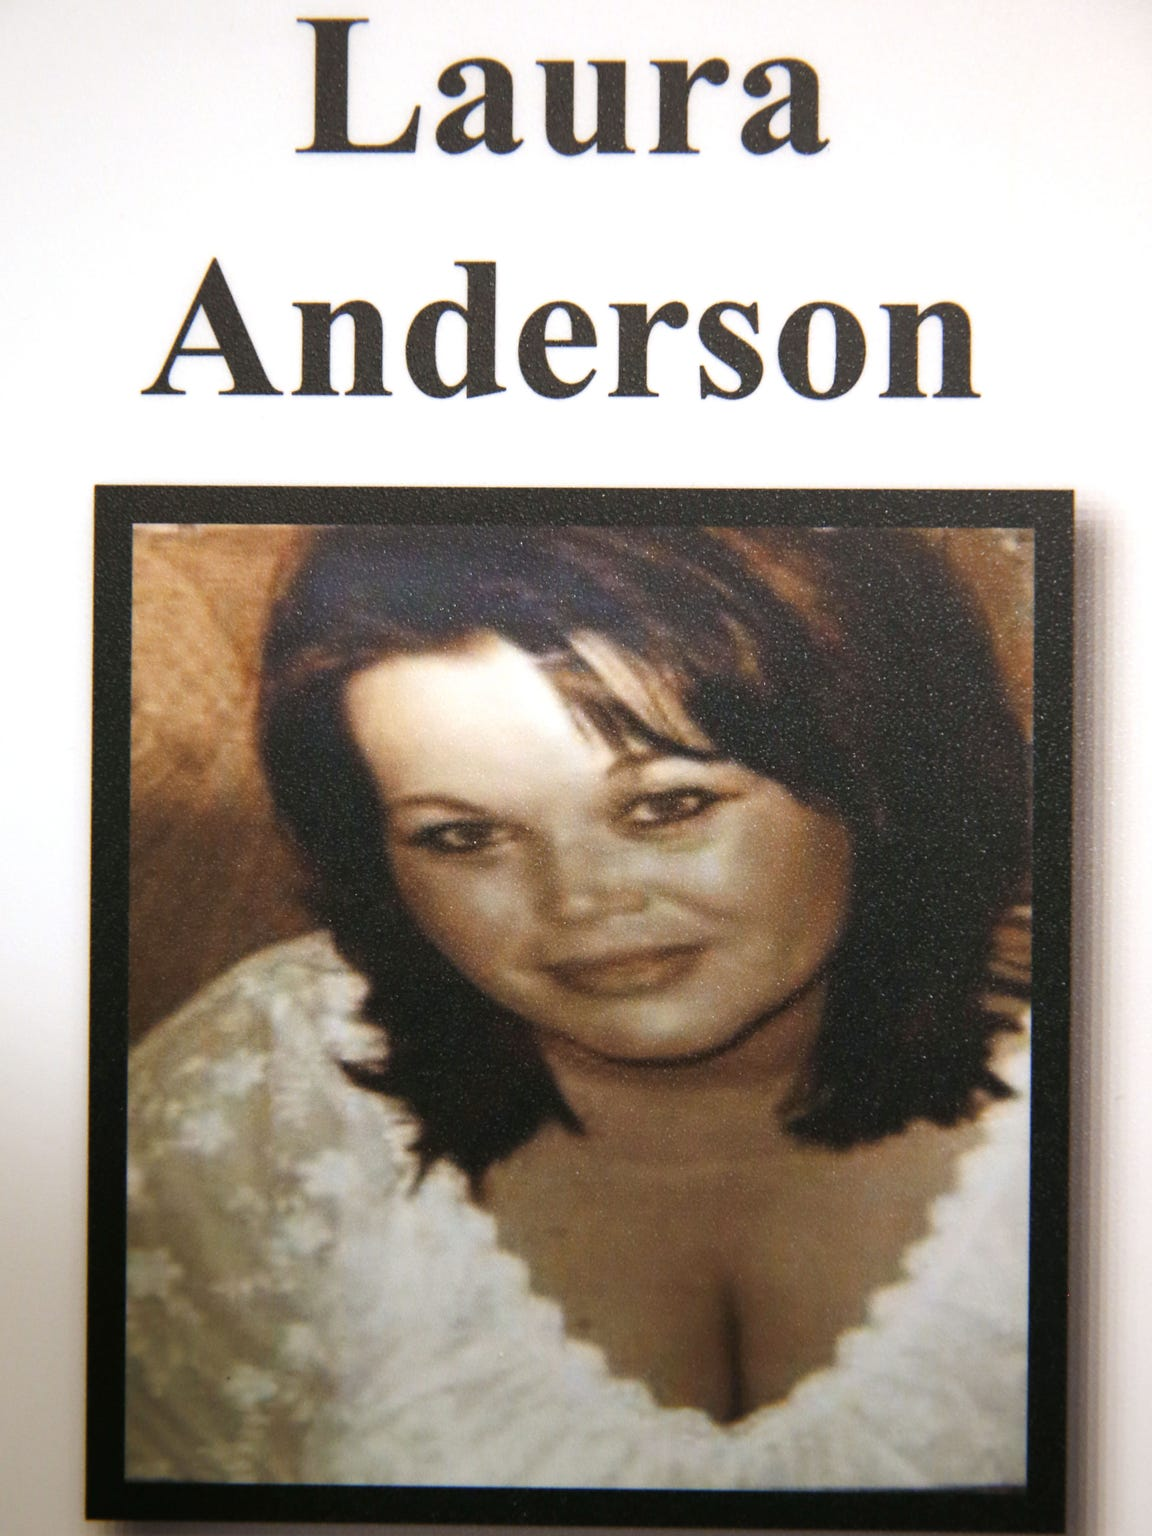 A photo of Laura Anderson, a victim of Dwight Jones,